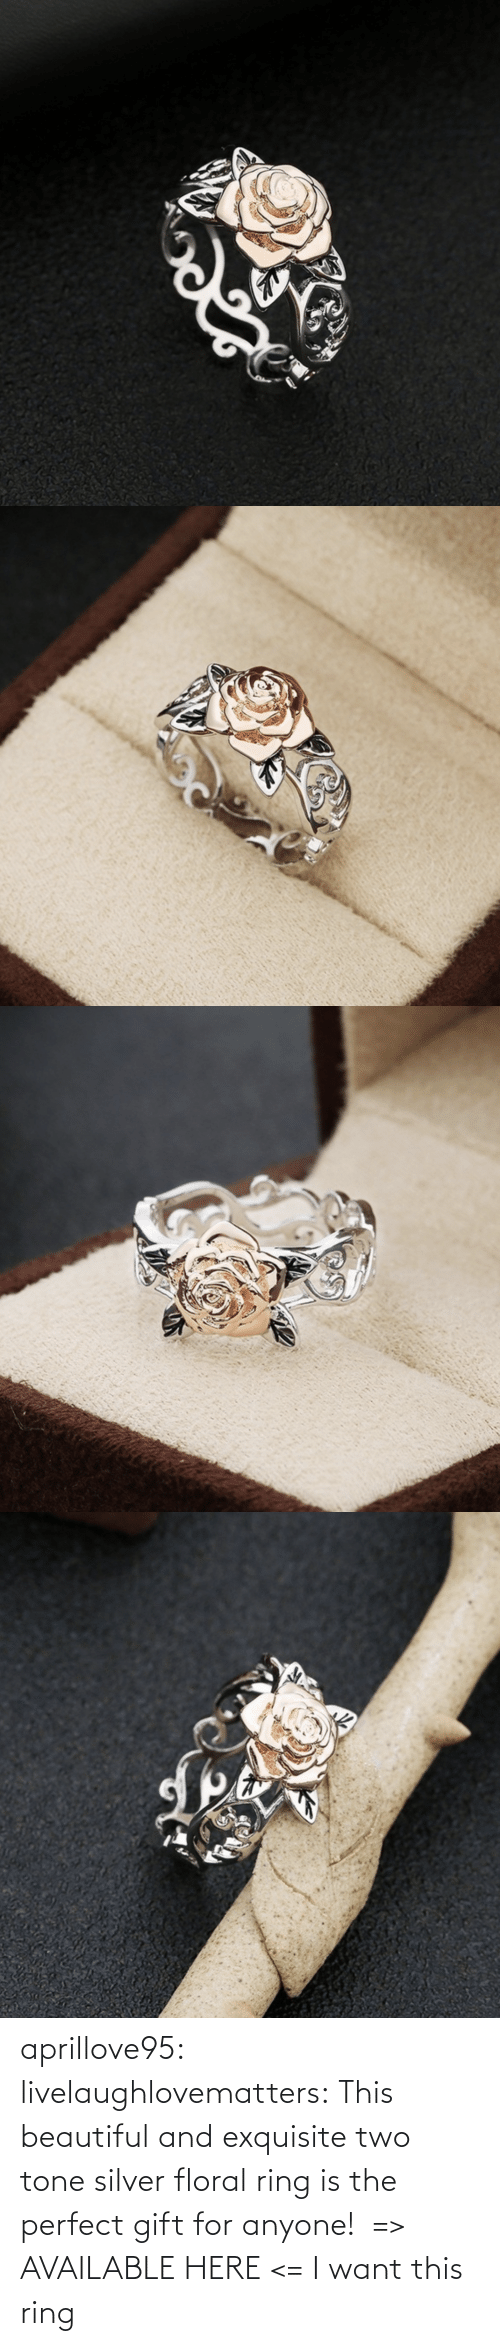 gift: aprillove95:  livelaughlovematters:  This beautiful and exquisite two tone silver floral ring is the perfect gift for anyone! => AVAILABLE HERE <=    I want this ring